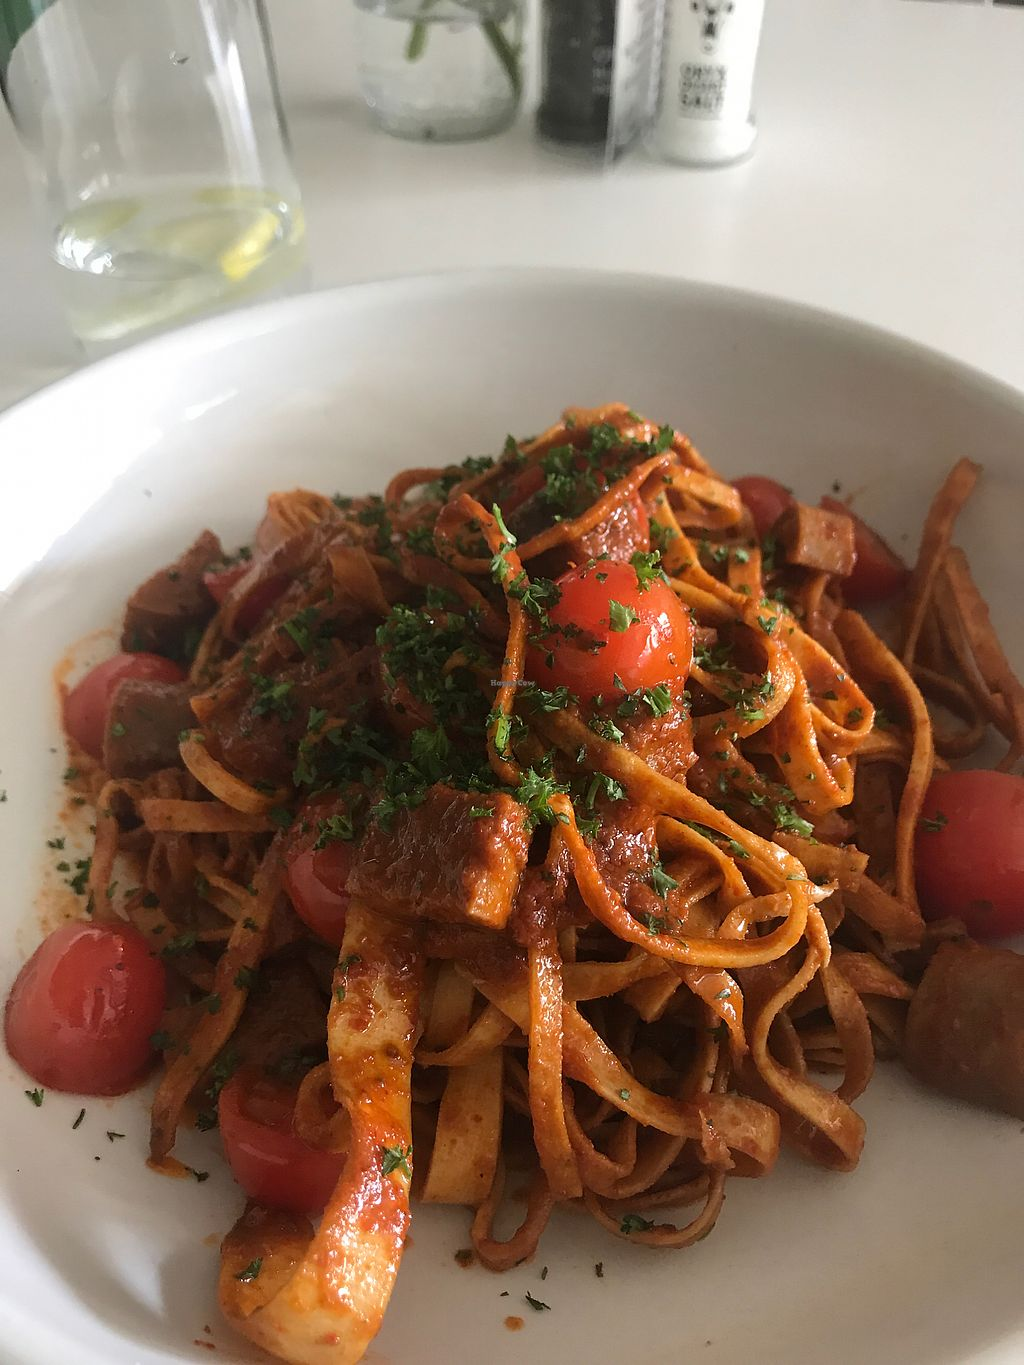 """Photo of The Greenside Cafe  by <a href=""""/members/profile/leylana"""">leylana</a> <br/>Spicy pasta with sausage. ? <br/> September 9, 2017  - <a href='/contact/abuse/image/18707/302390'>Report</a>"""